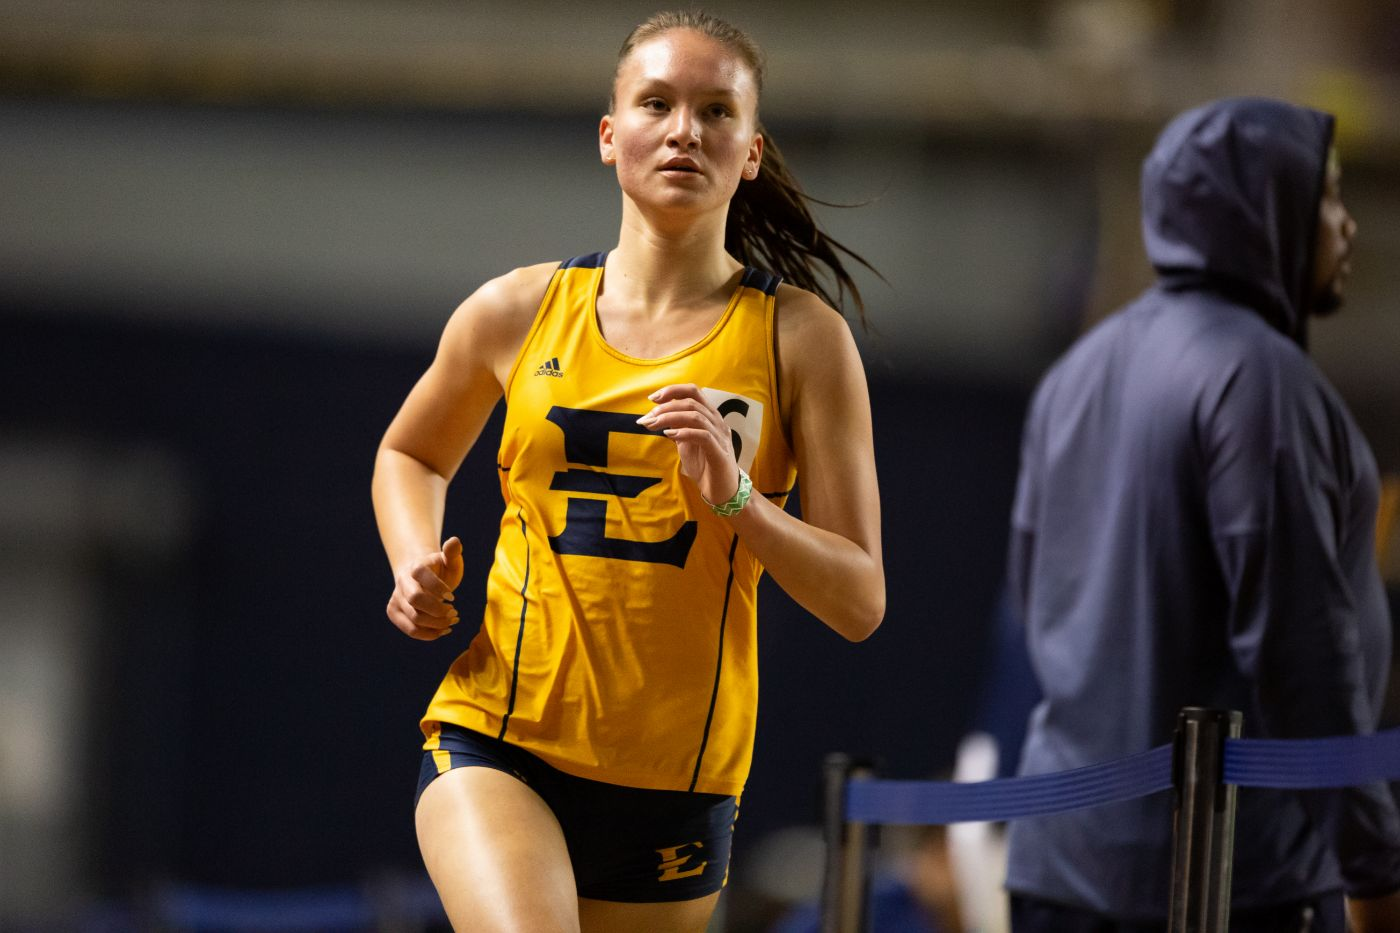 Bucs bring home personal records from Music City Challenge